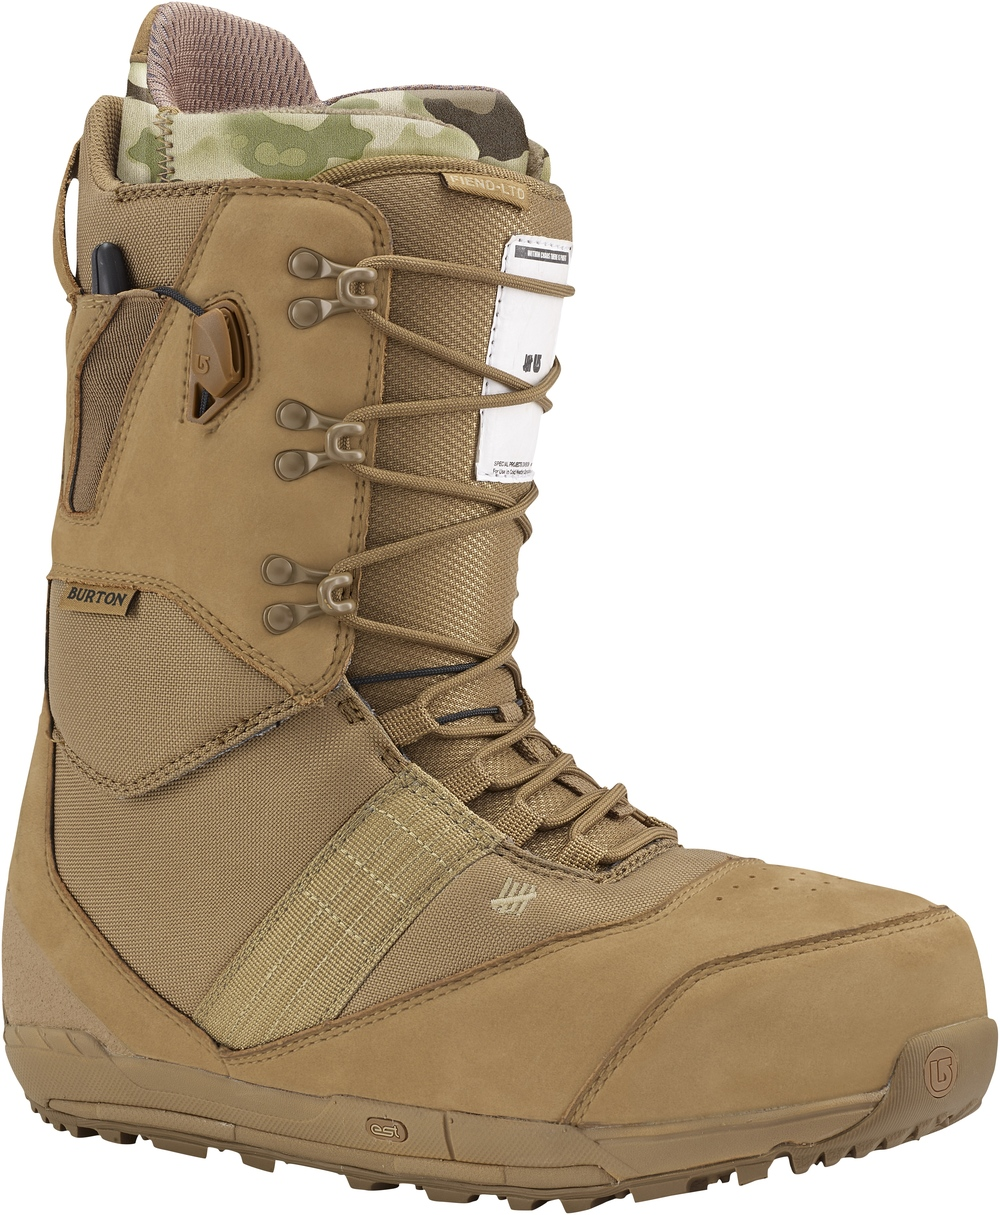 Burton x UNDEFEATED x Alpha Industries Fiend LTD Snowboard Boot, $300